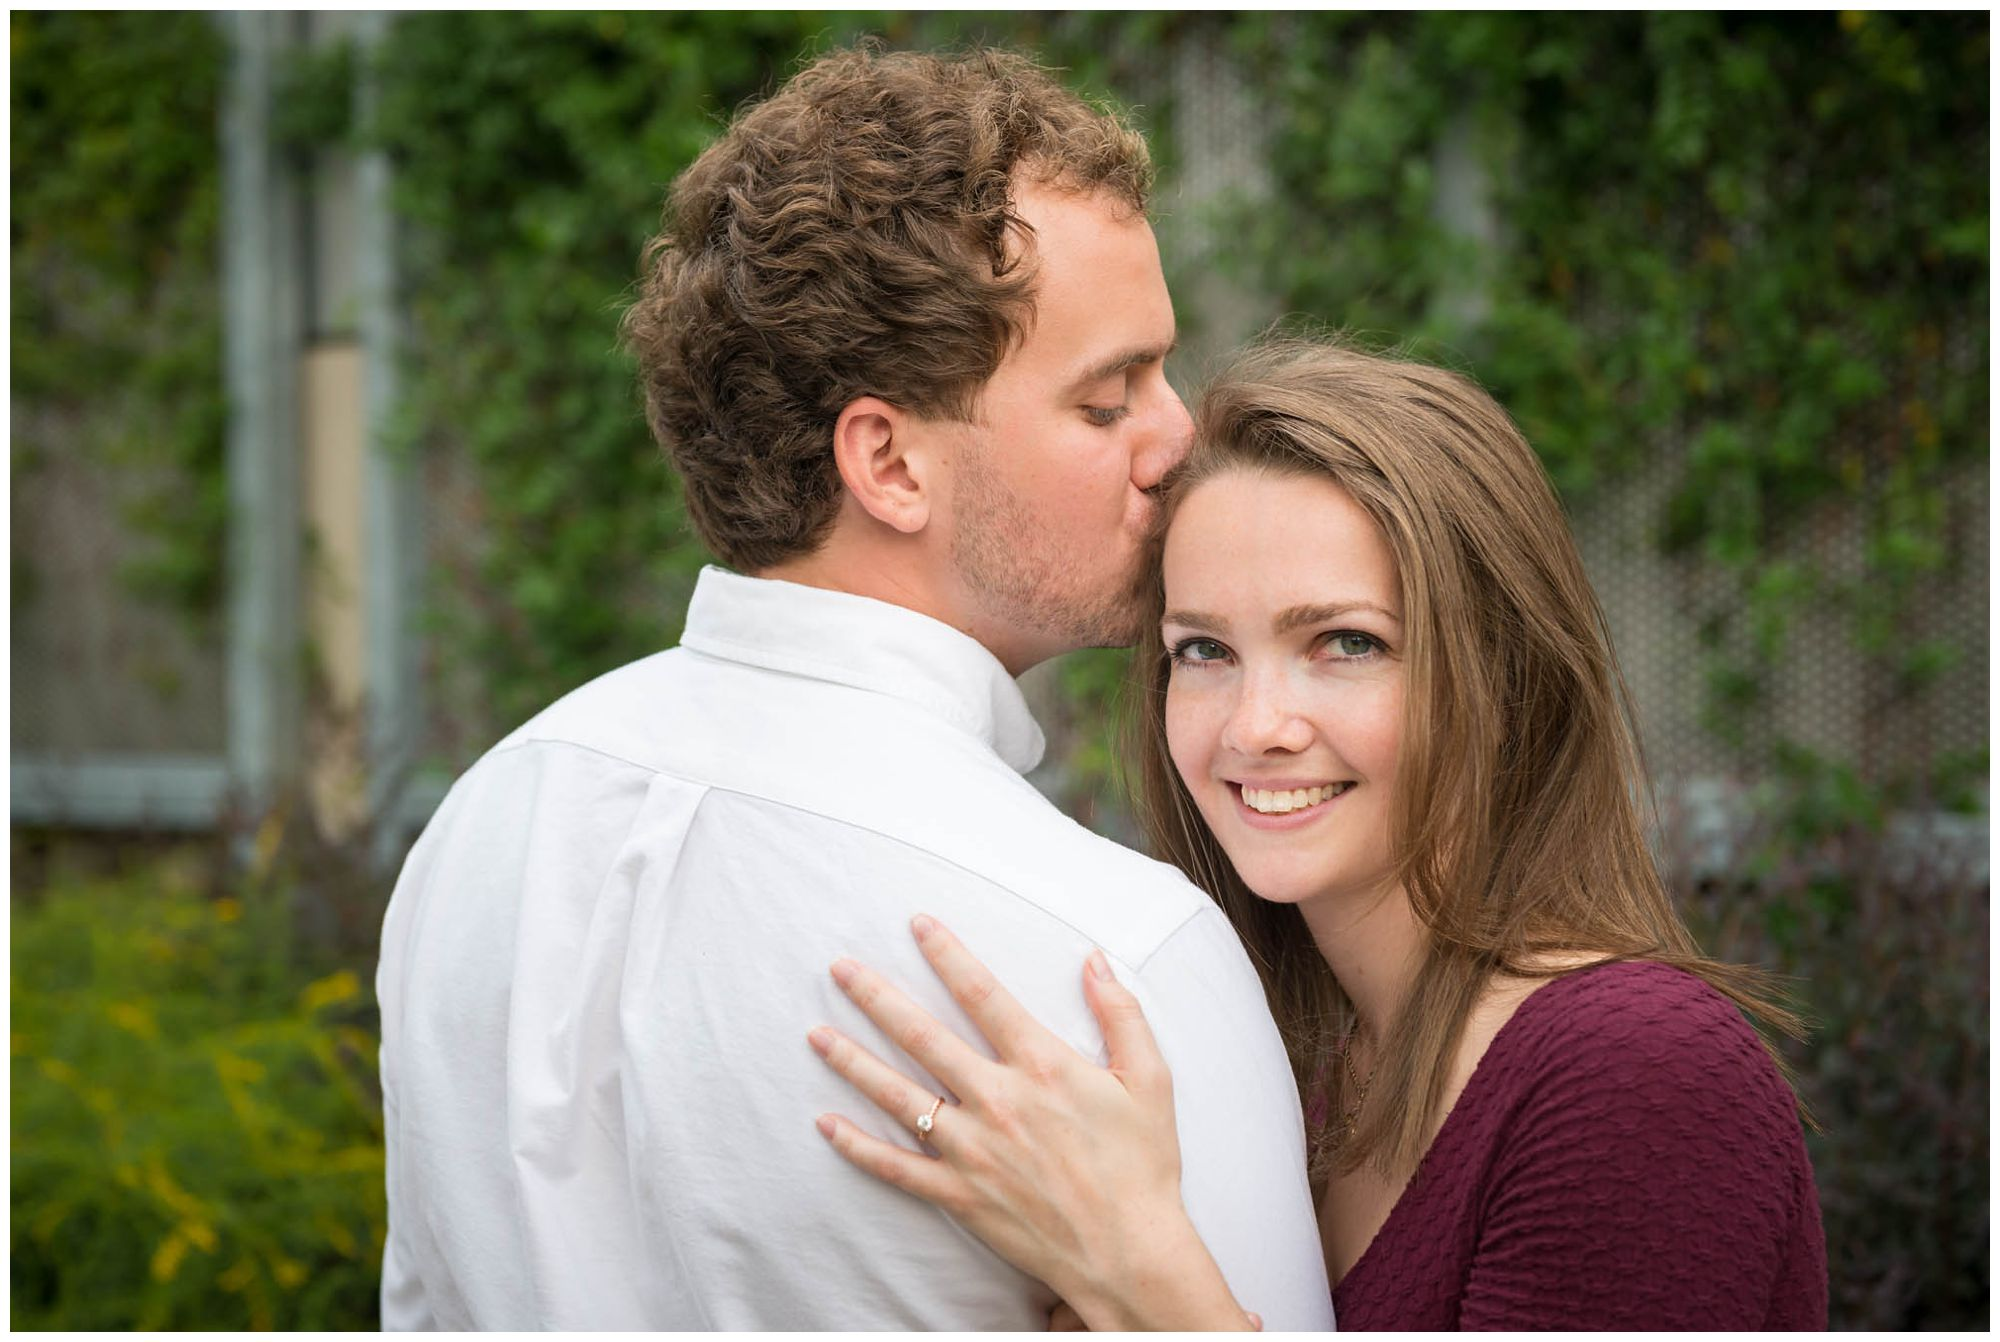 engaged couple in urban park